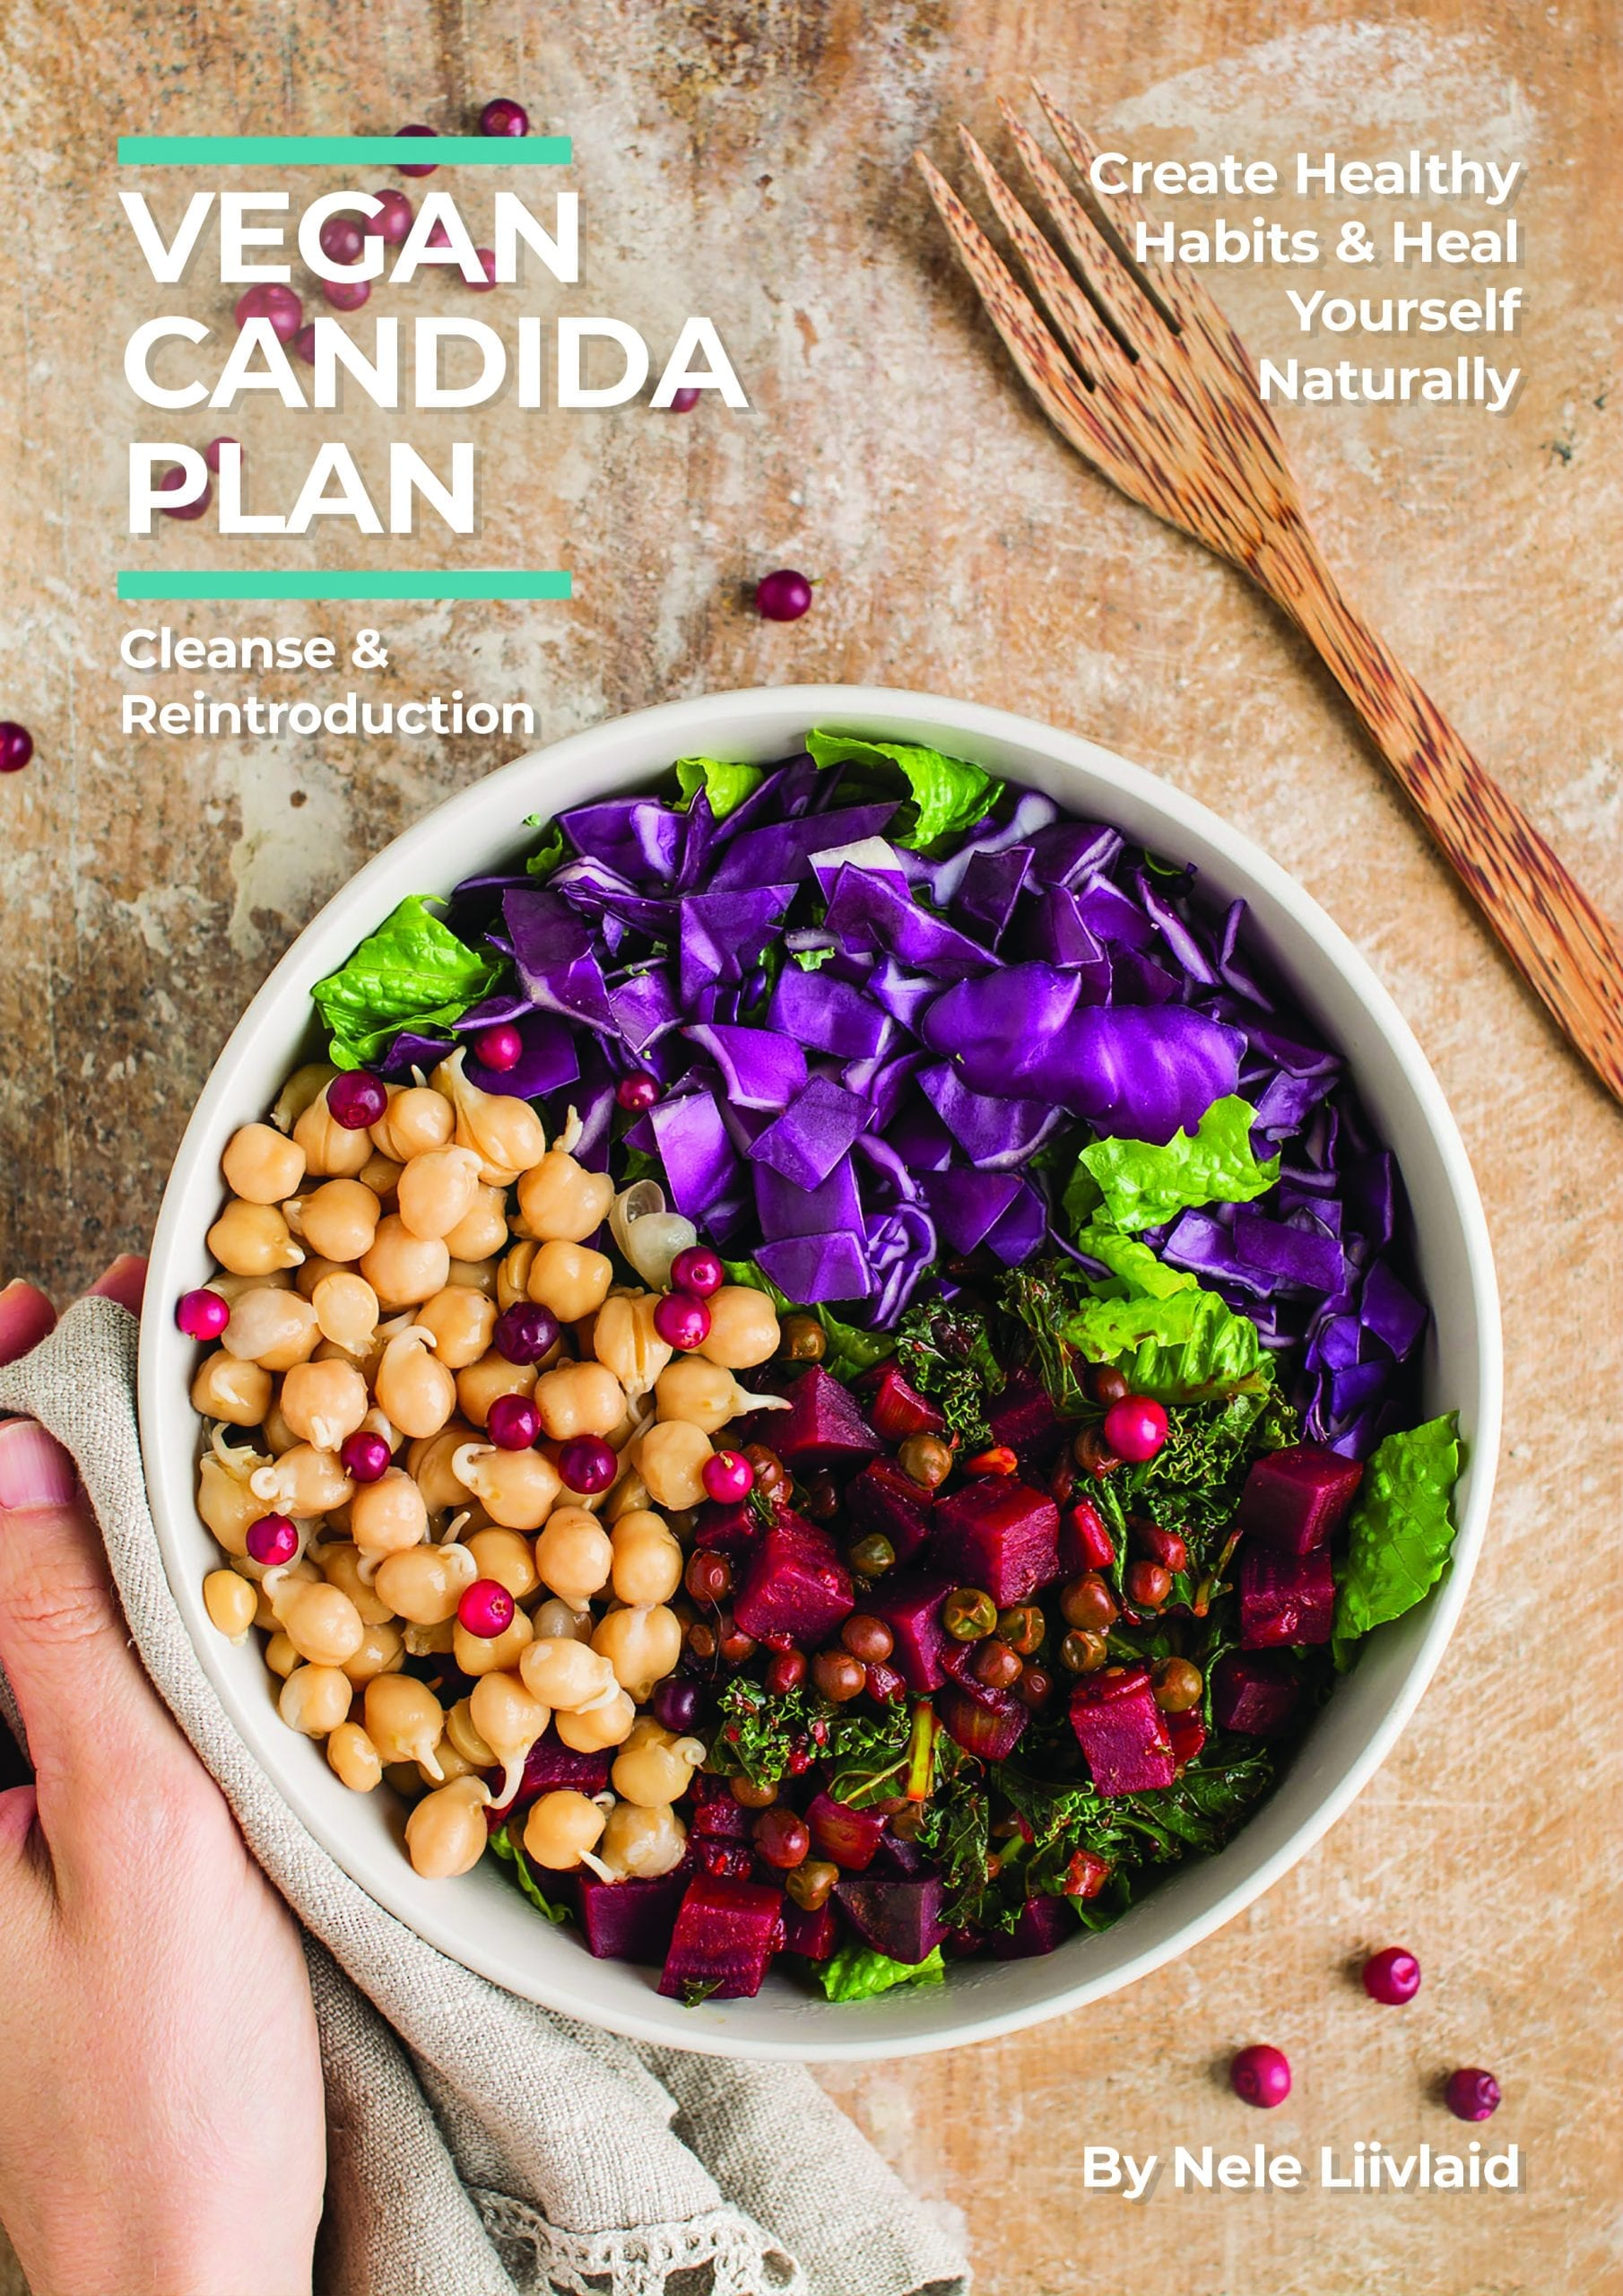 Vegan Candida Cleanse Recipes for a Day